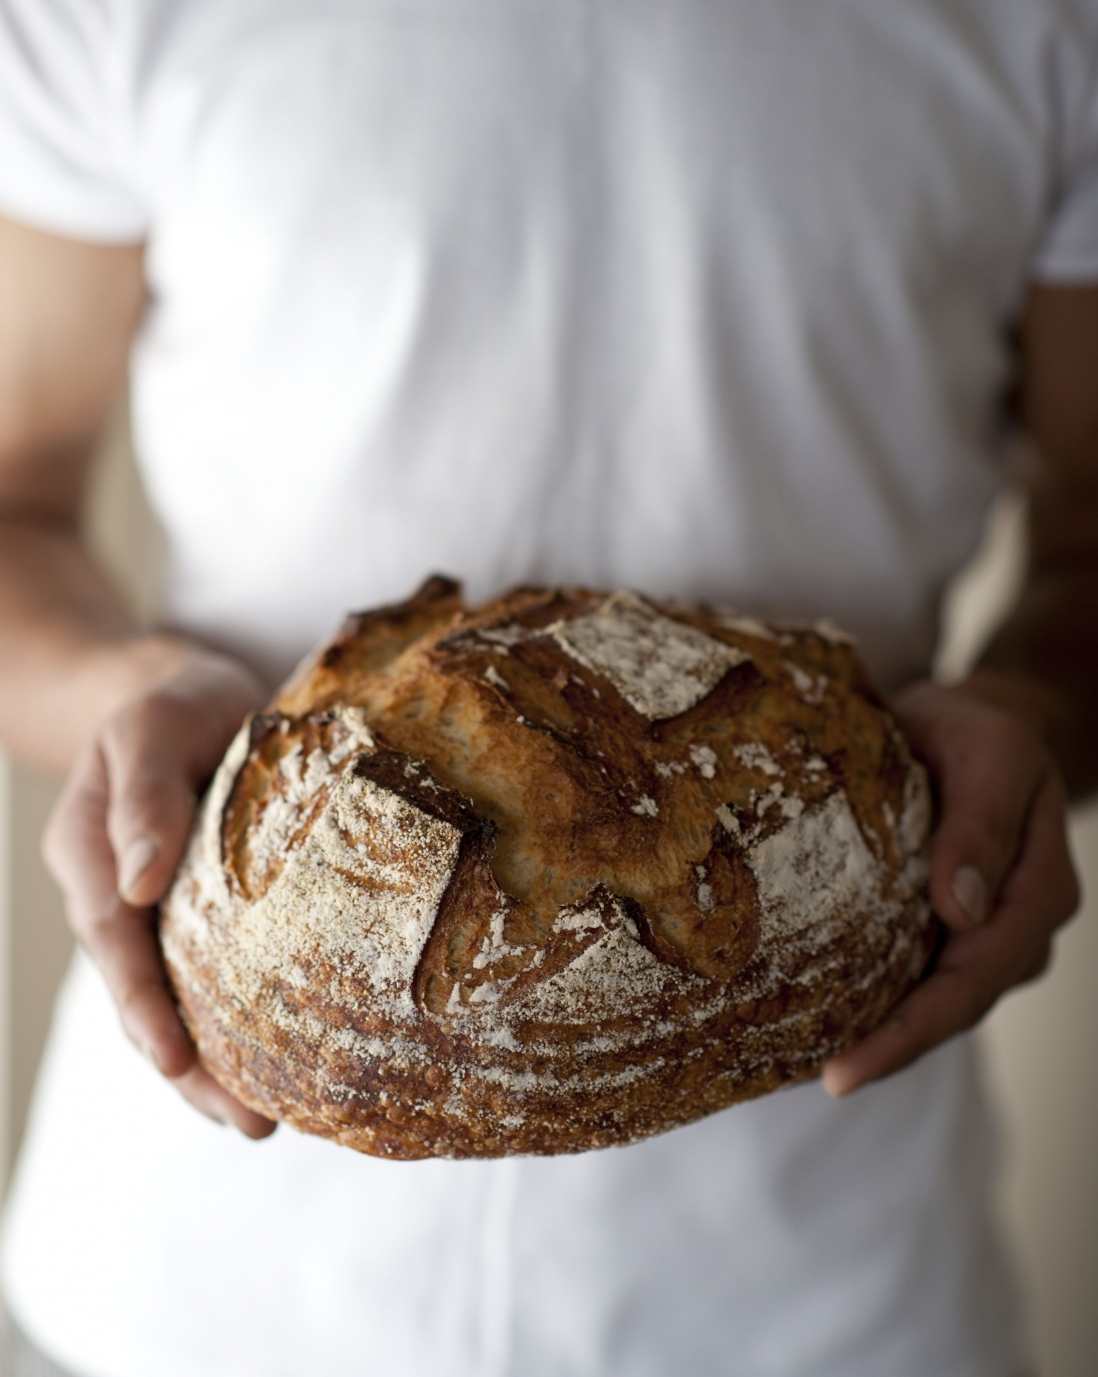 Cropped image of person holding a round loaf of bread